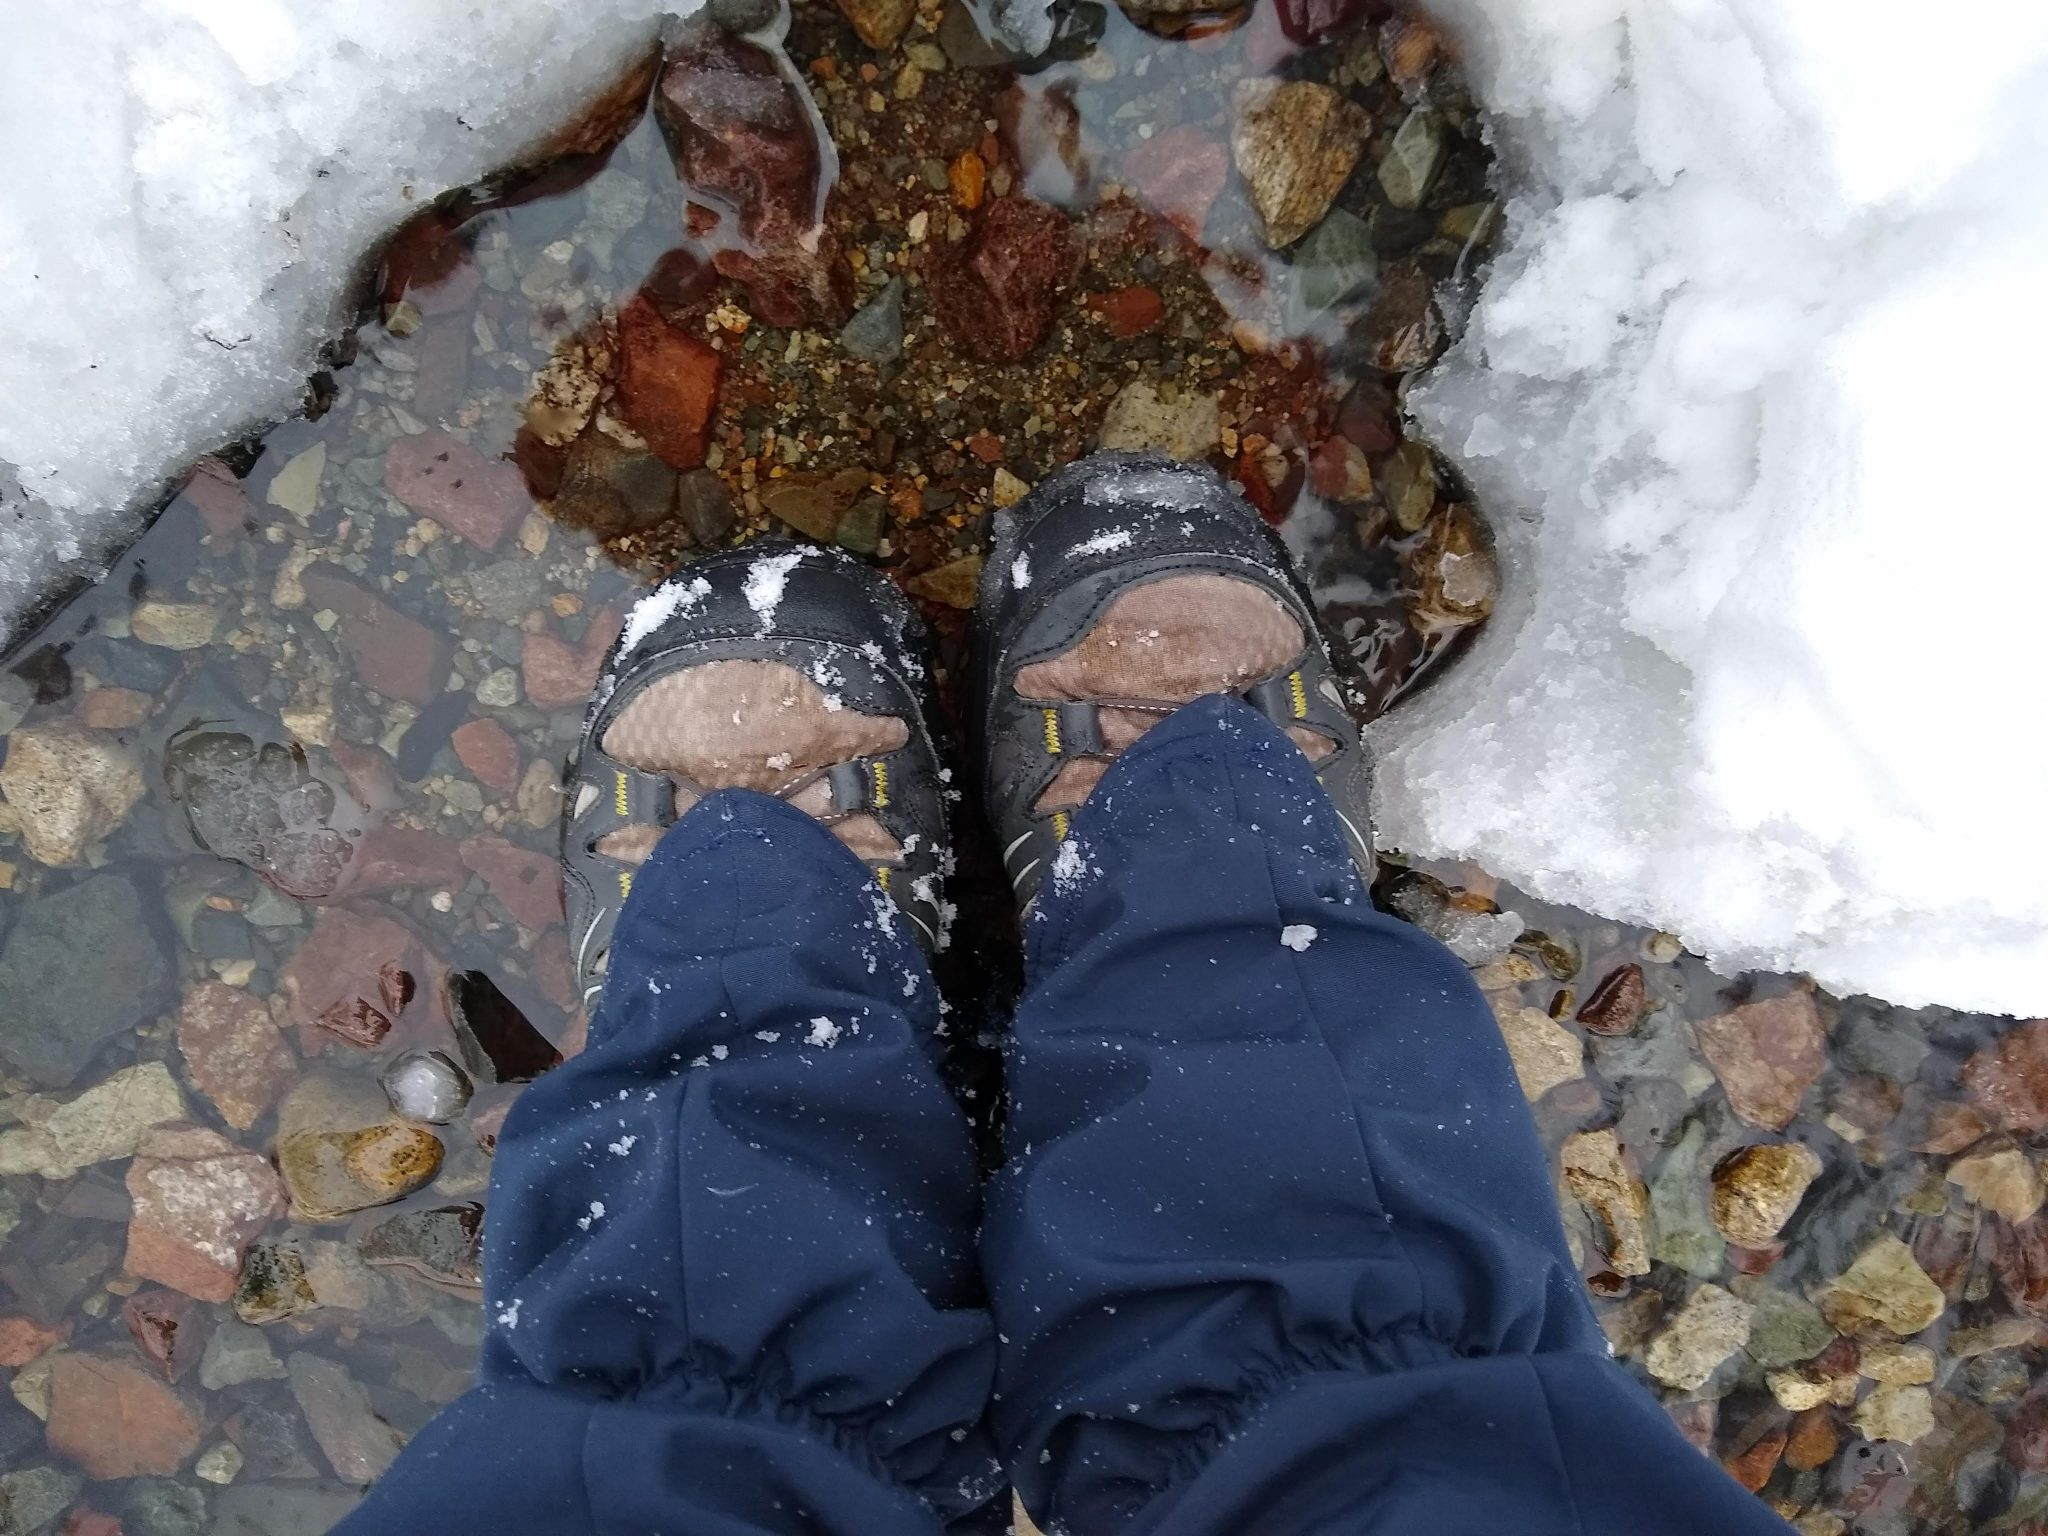 A person's lower leg and feet. They are standing in a puddle surrounded by snow. They are wearing waterproof shoes and gaiters to protect their feet and legs from getting wet